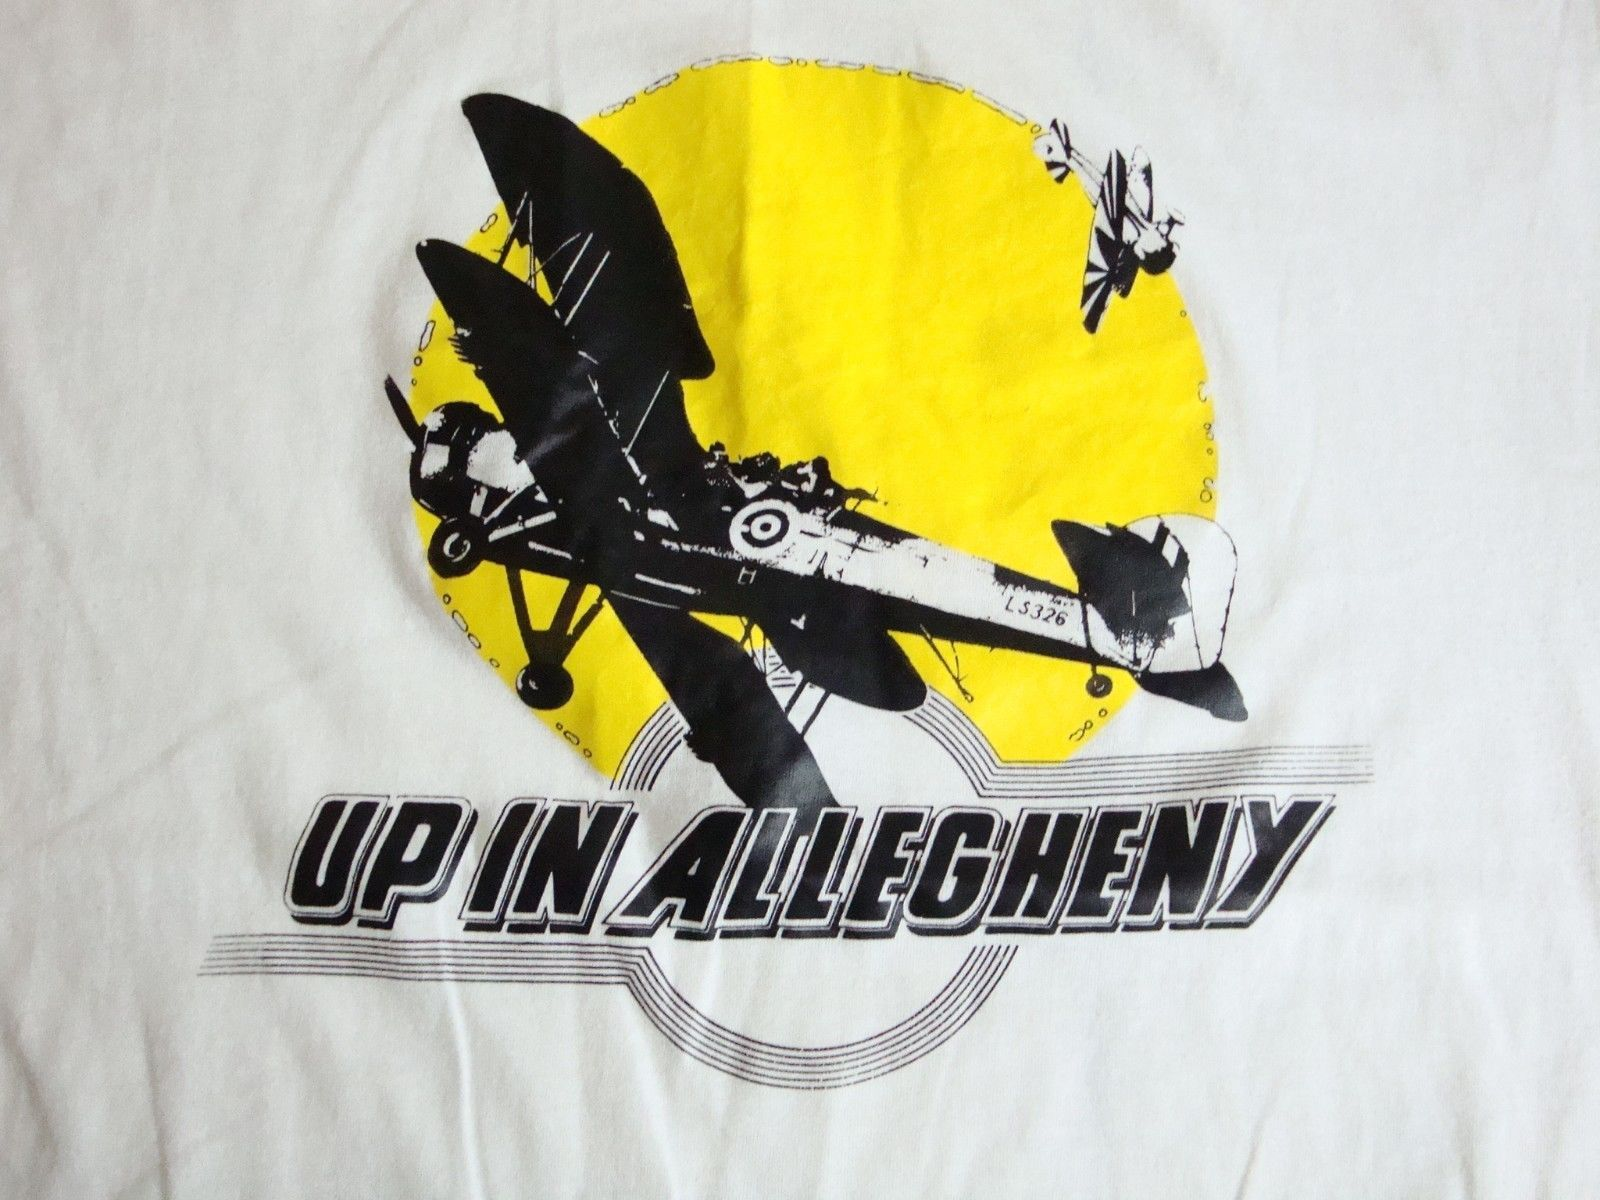 Vintage Up in Allegheny Crop Dusters Airplane Pilot  Ringer Thin T Shirt L - $25.73